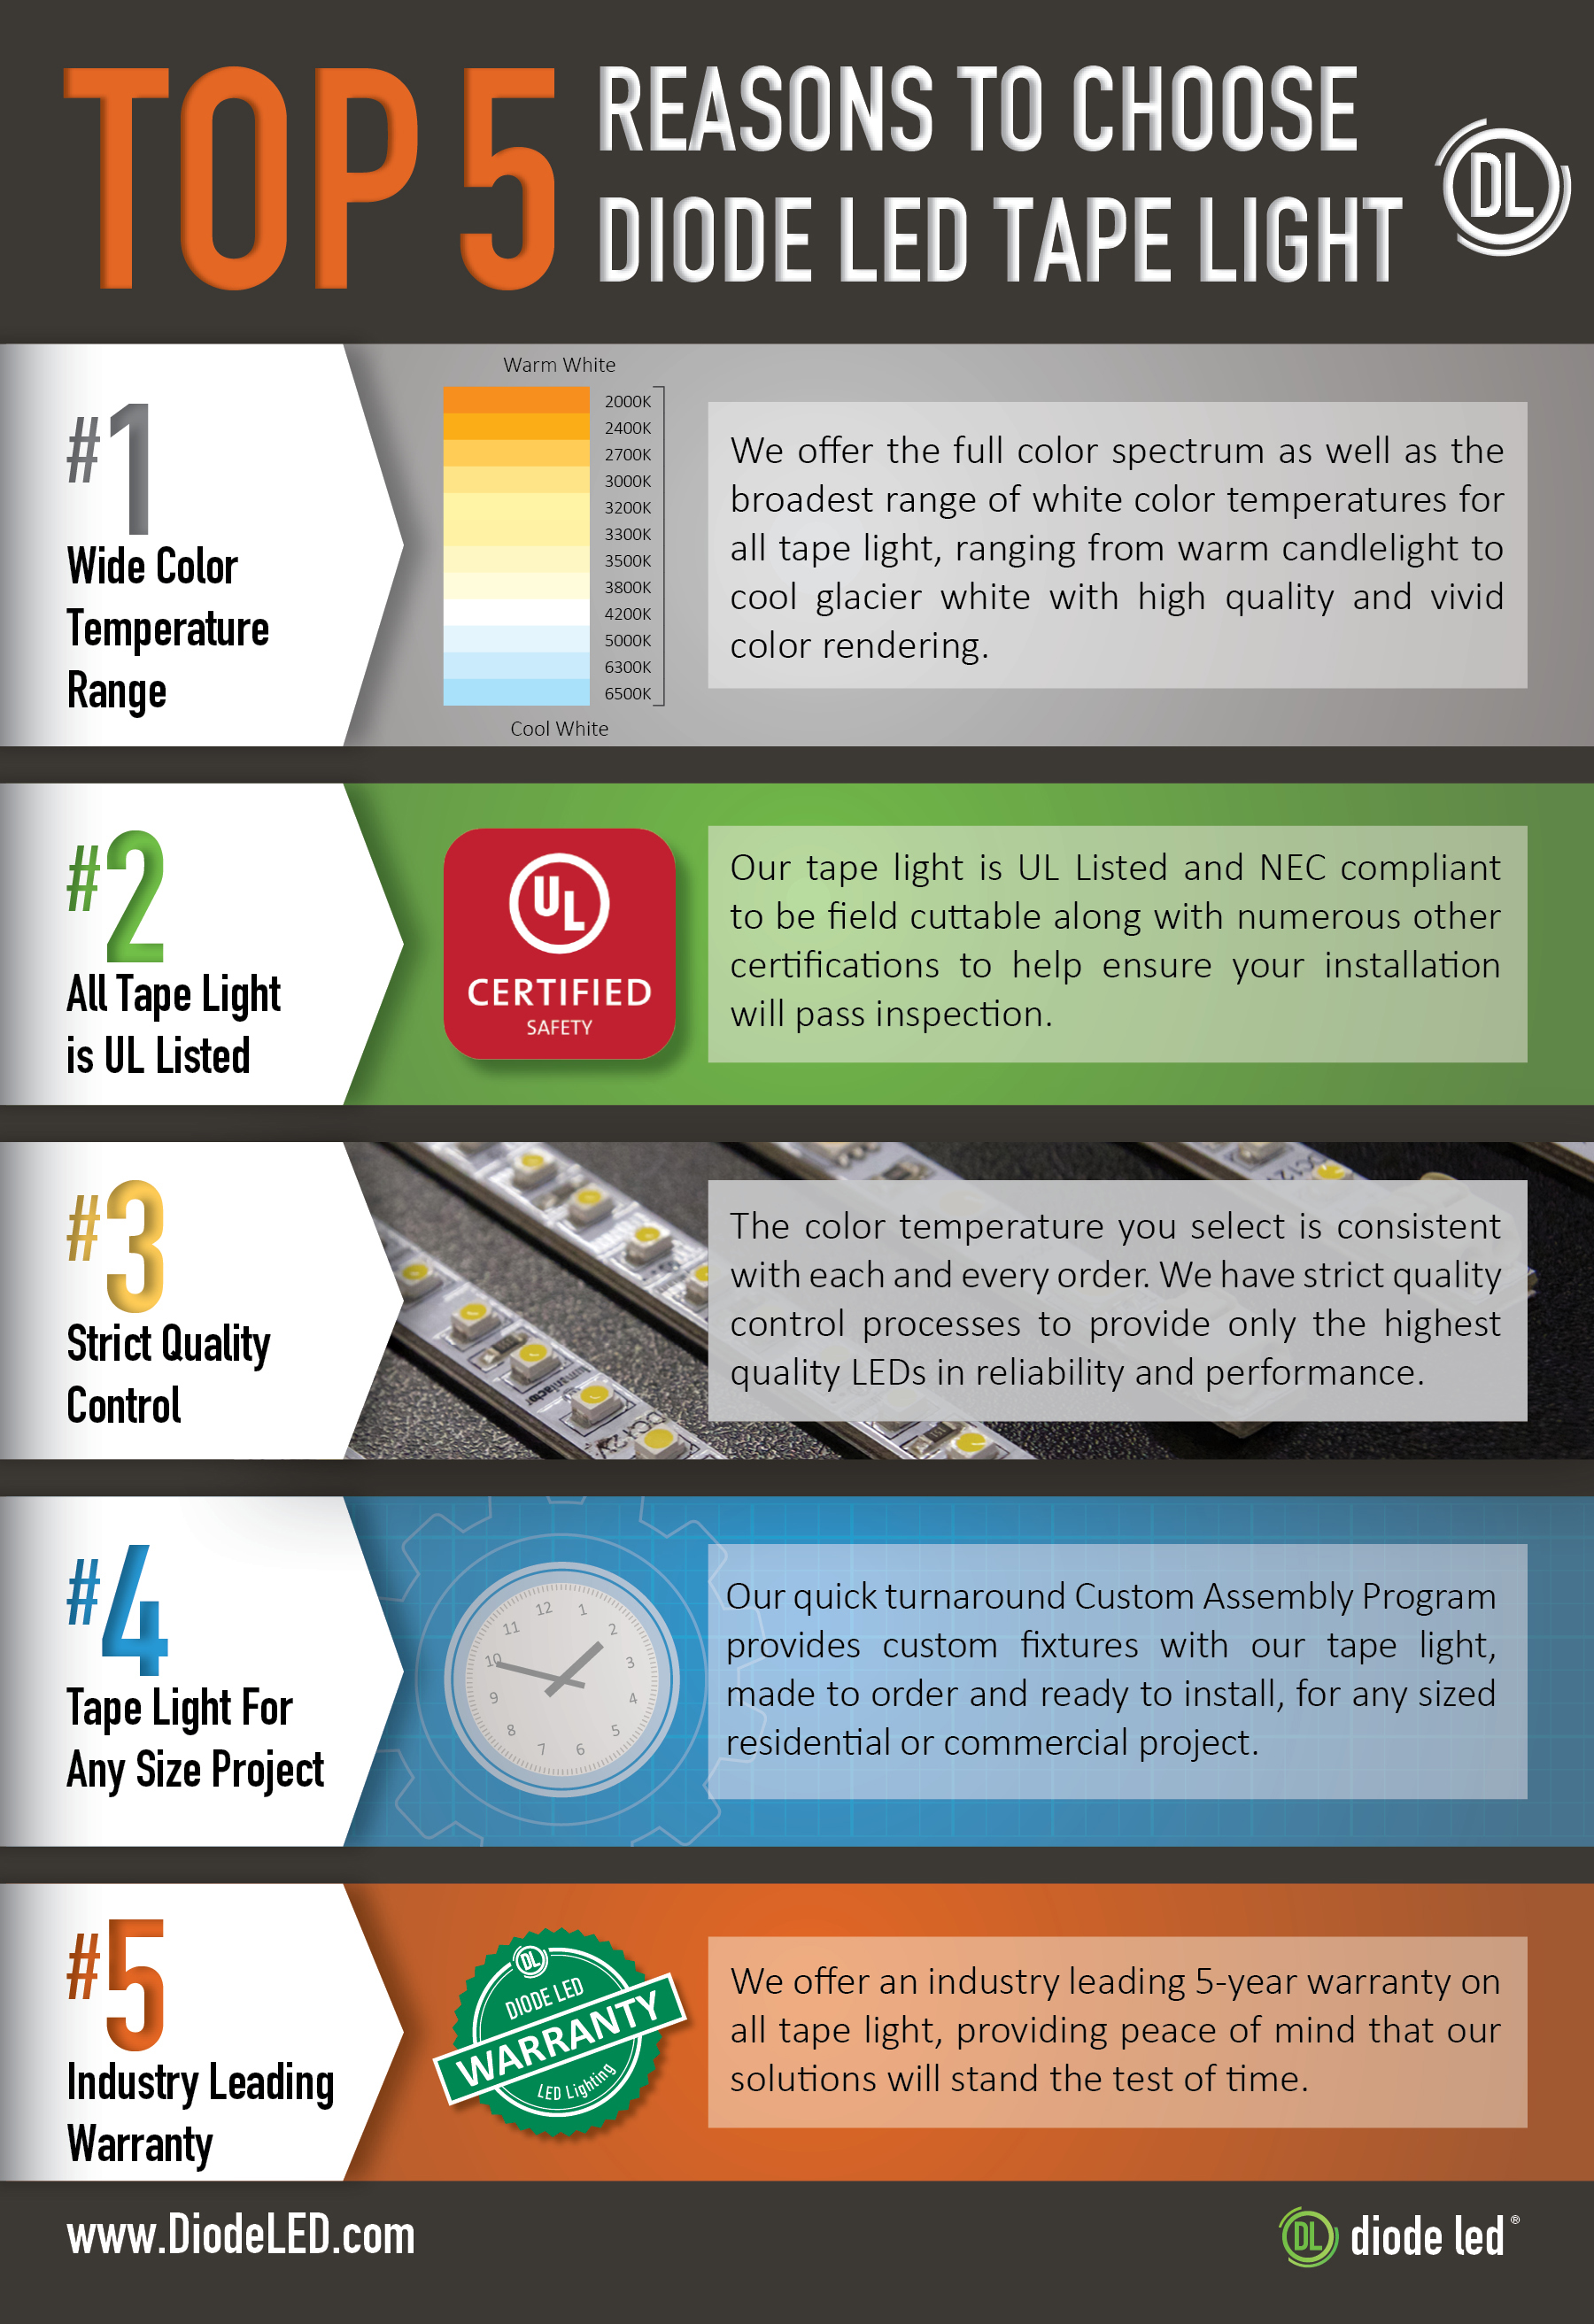 Top 5 reasons to buy Diode led tape light